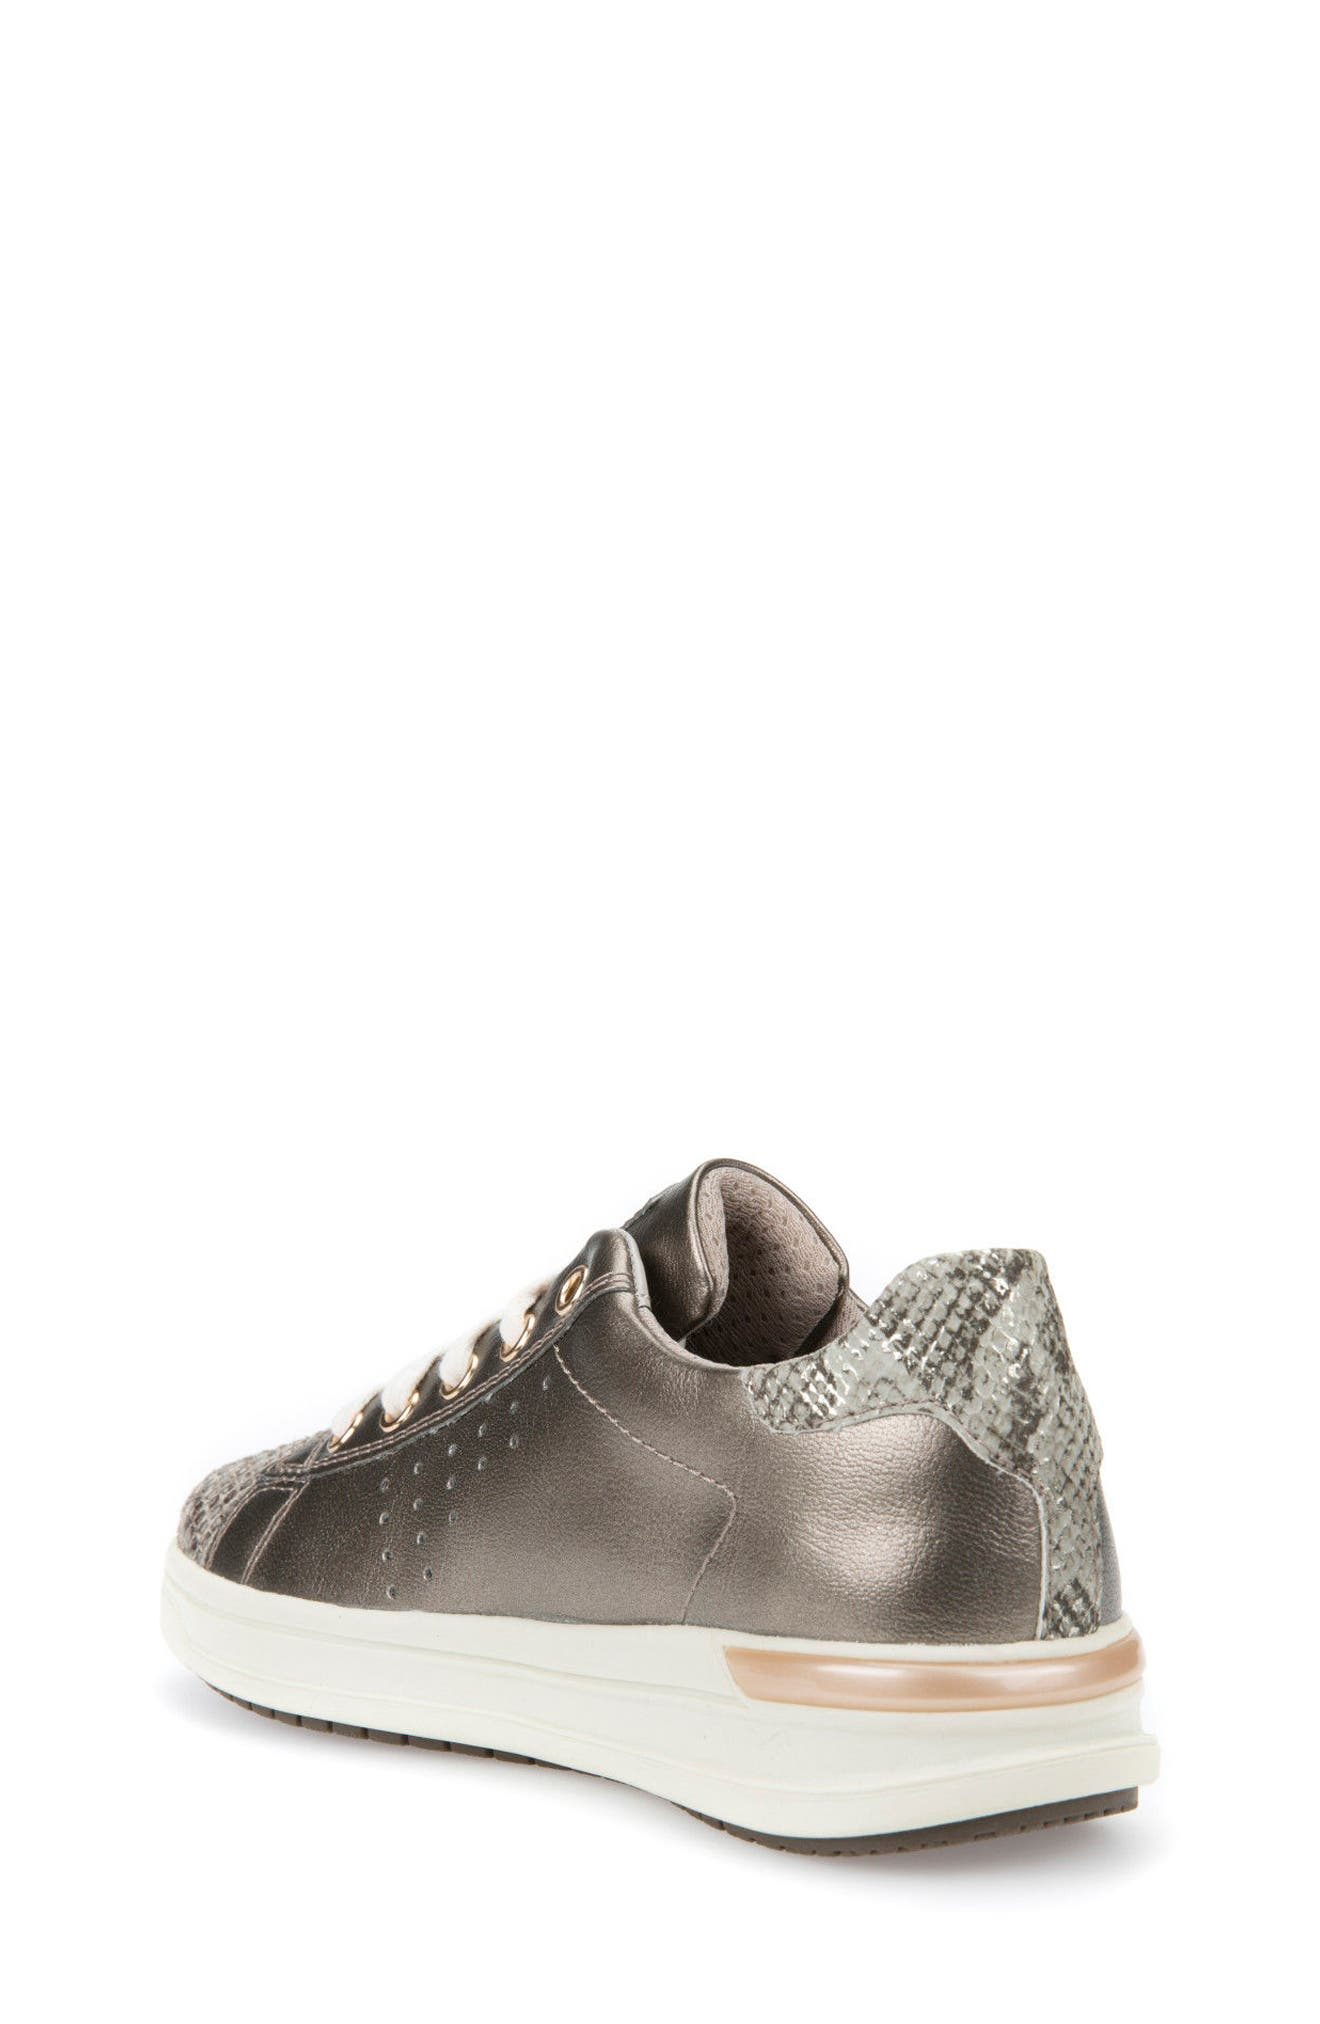 Cave Up Girl Low Top Sneaker,                             Alternate thumbnail 2, color,                             Gold